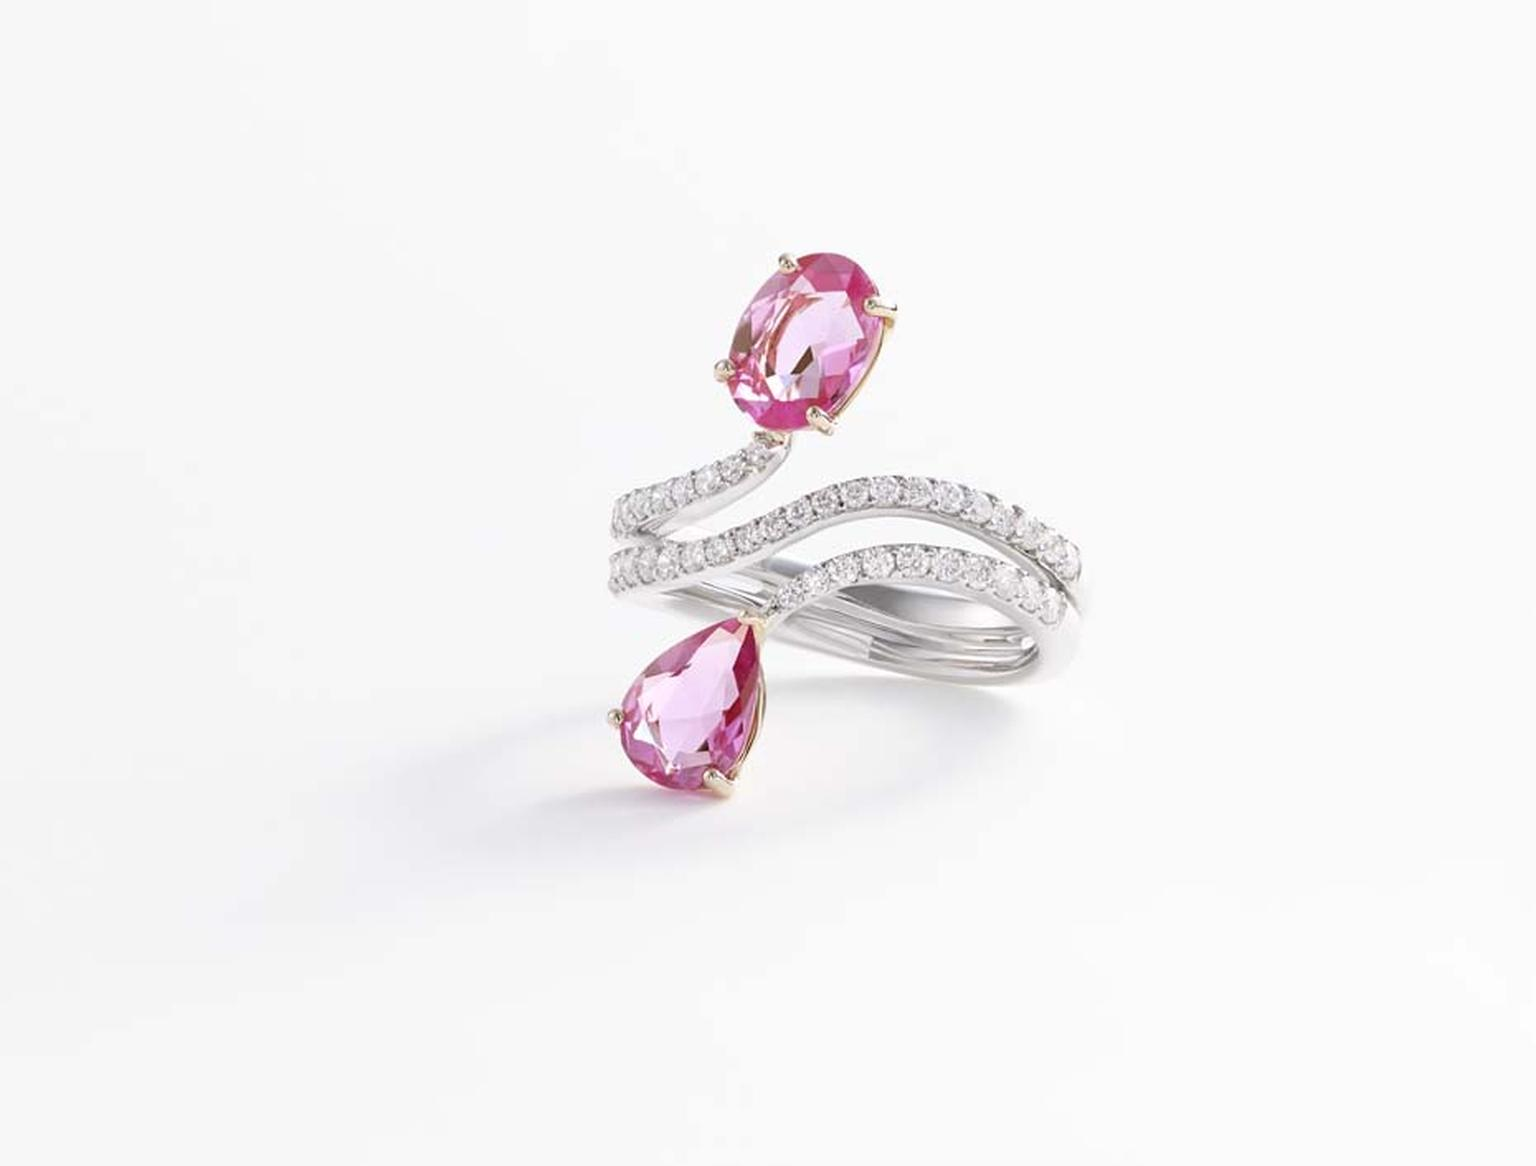 William & Son pink sapphire ring with diamonds in white and rose gold, from the new Beneath the Rose collection.